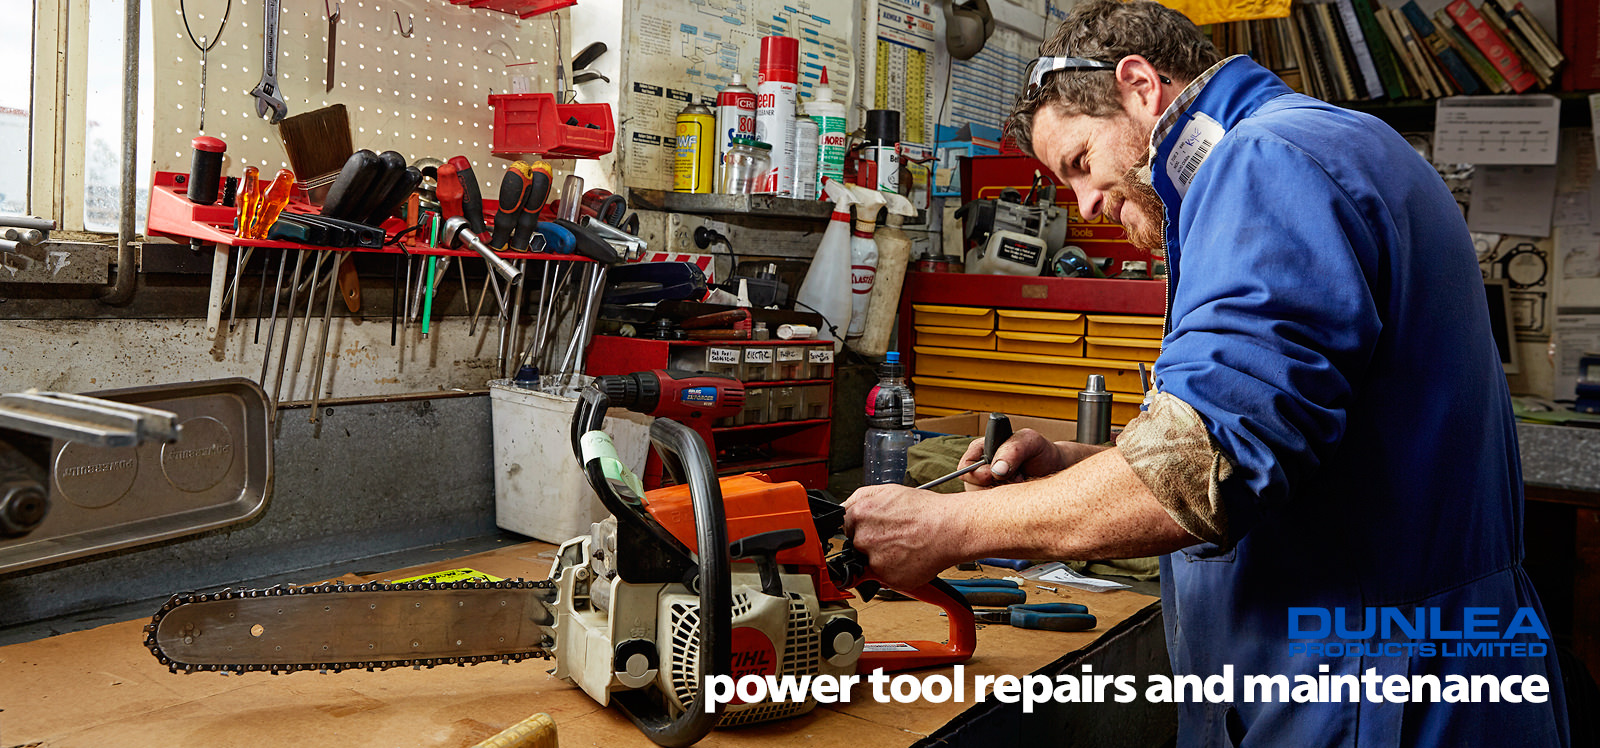 Dunlea Products power tool repairs